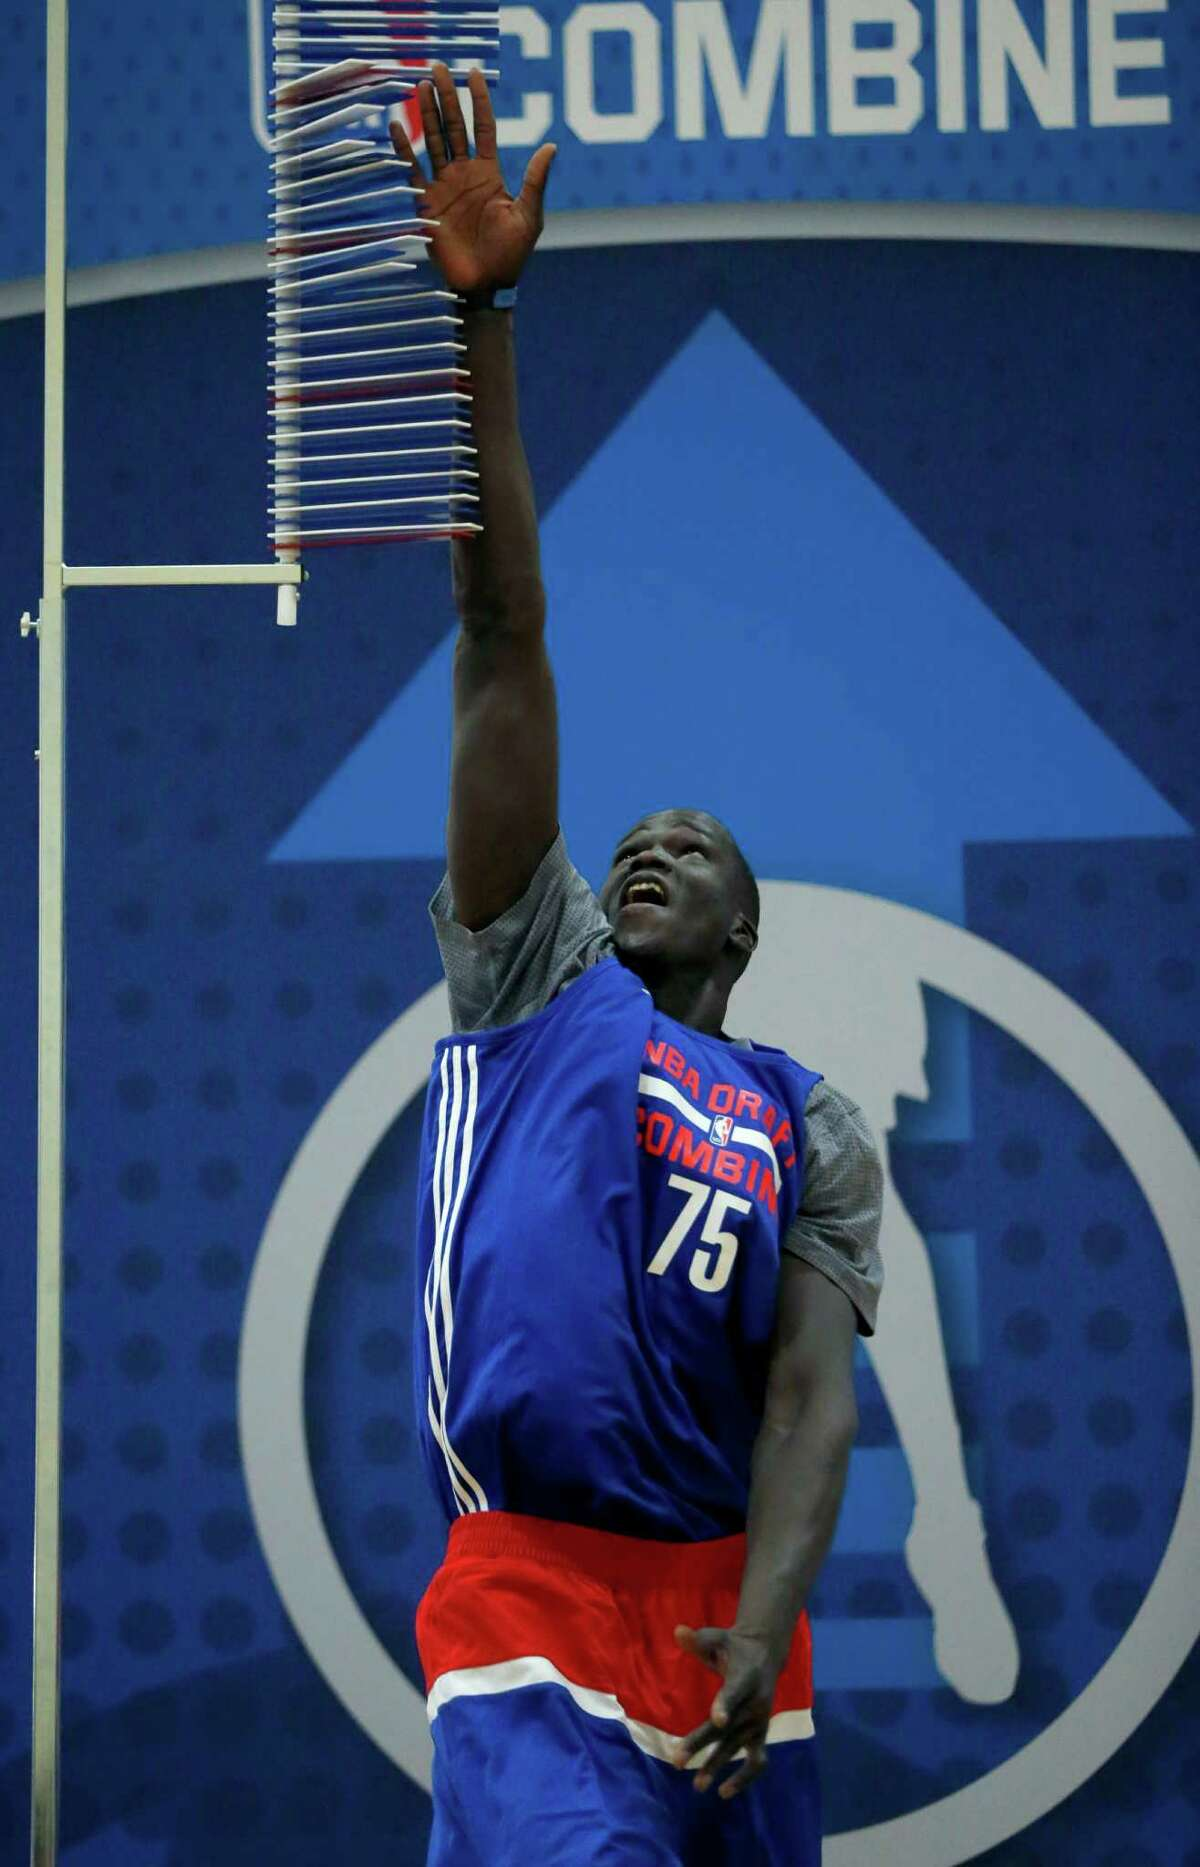 Thon Maker, from Orangeville Prep-Athlete Institute, participates in the NBA draft combine on May 13, 2016, in Chicago.